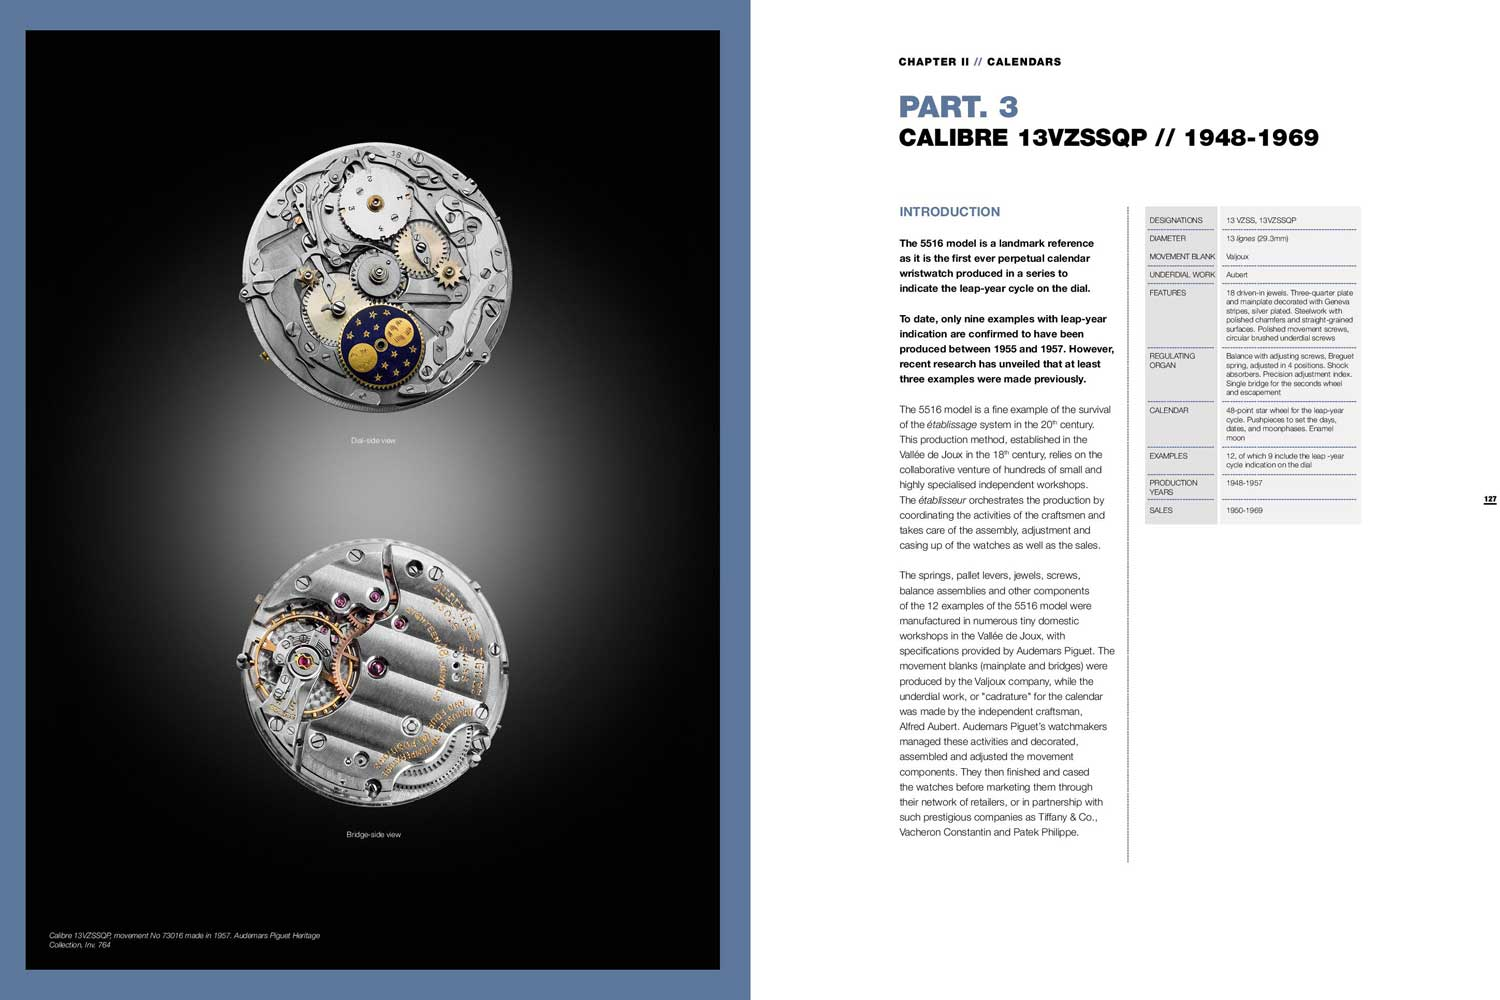 Pages from the Audemars Piguet 20th Century Complicated Wristwatches, collective work by Audemars Piguet